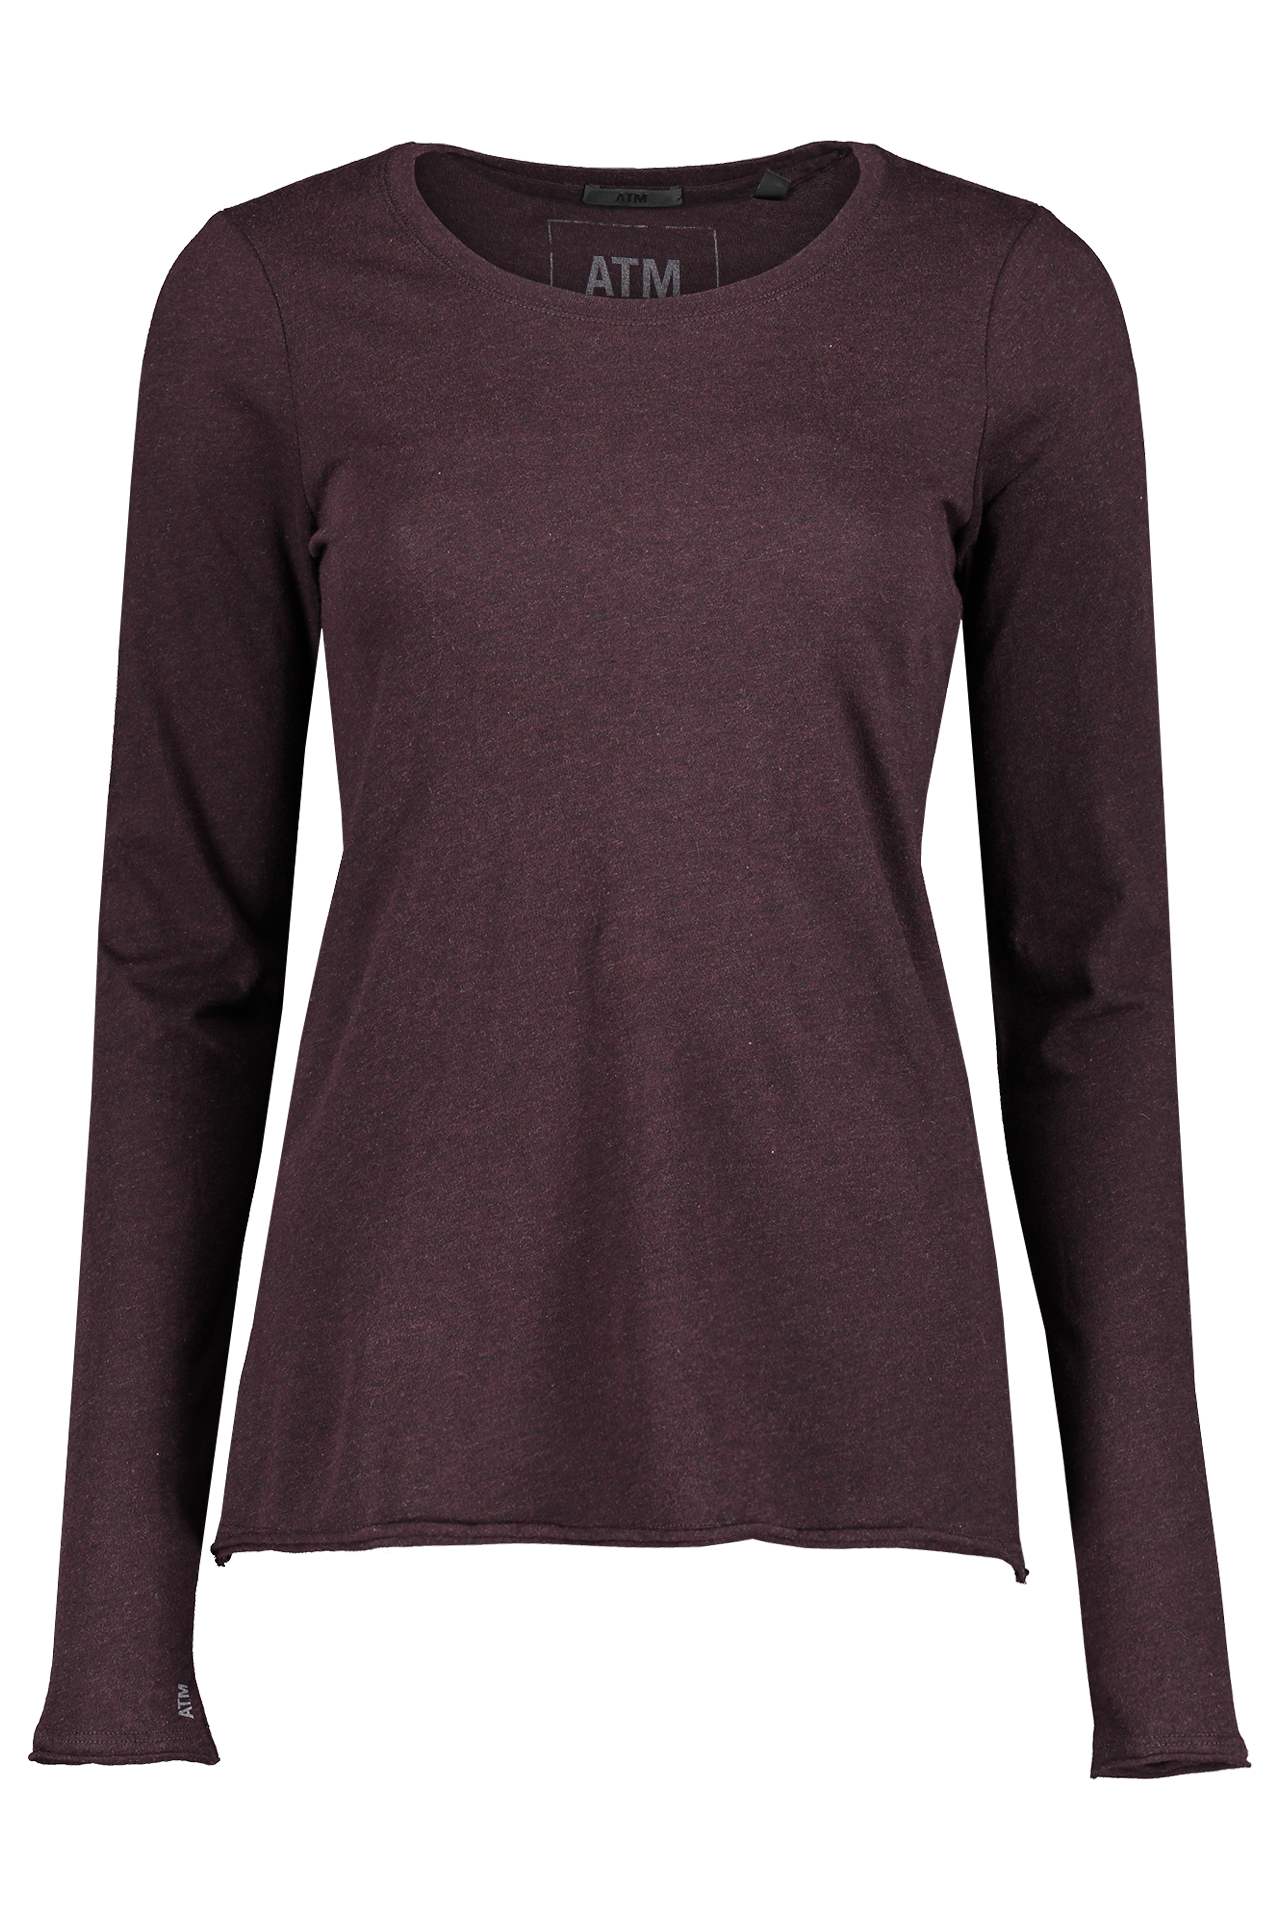 Front view image of ATM Long Sleeve Heather Jersey Shirt Heather Maroon